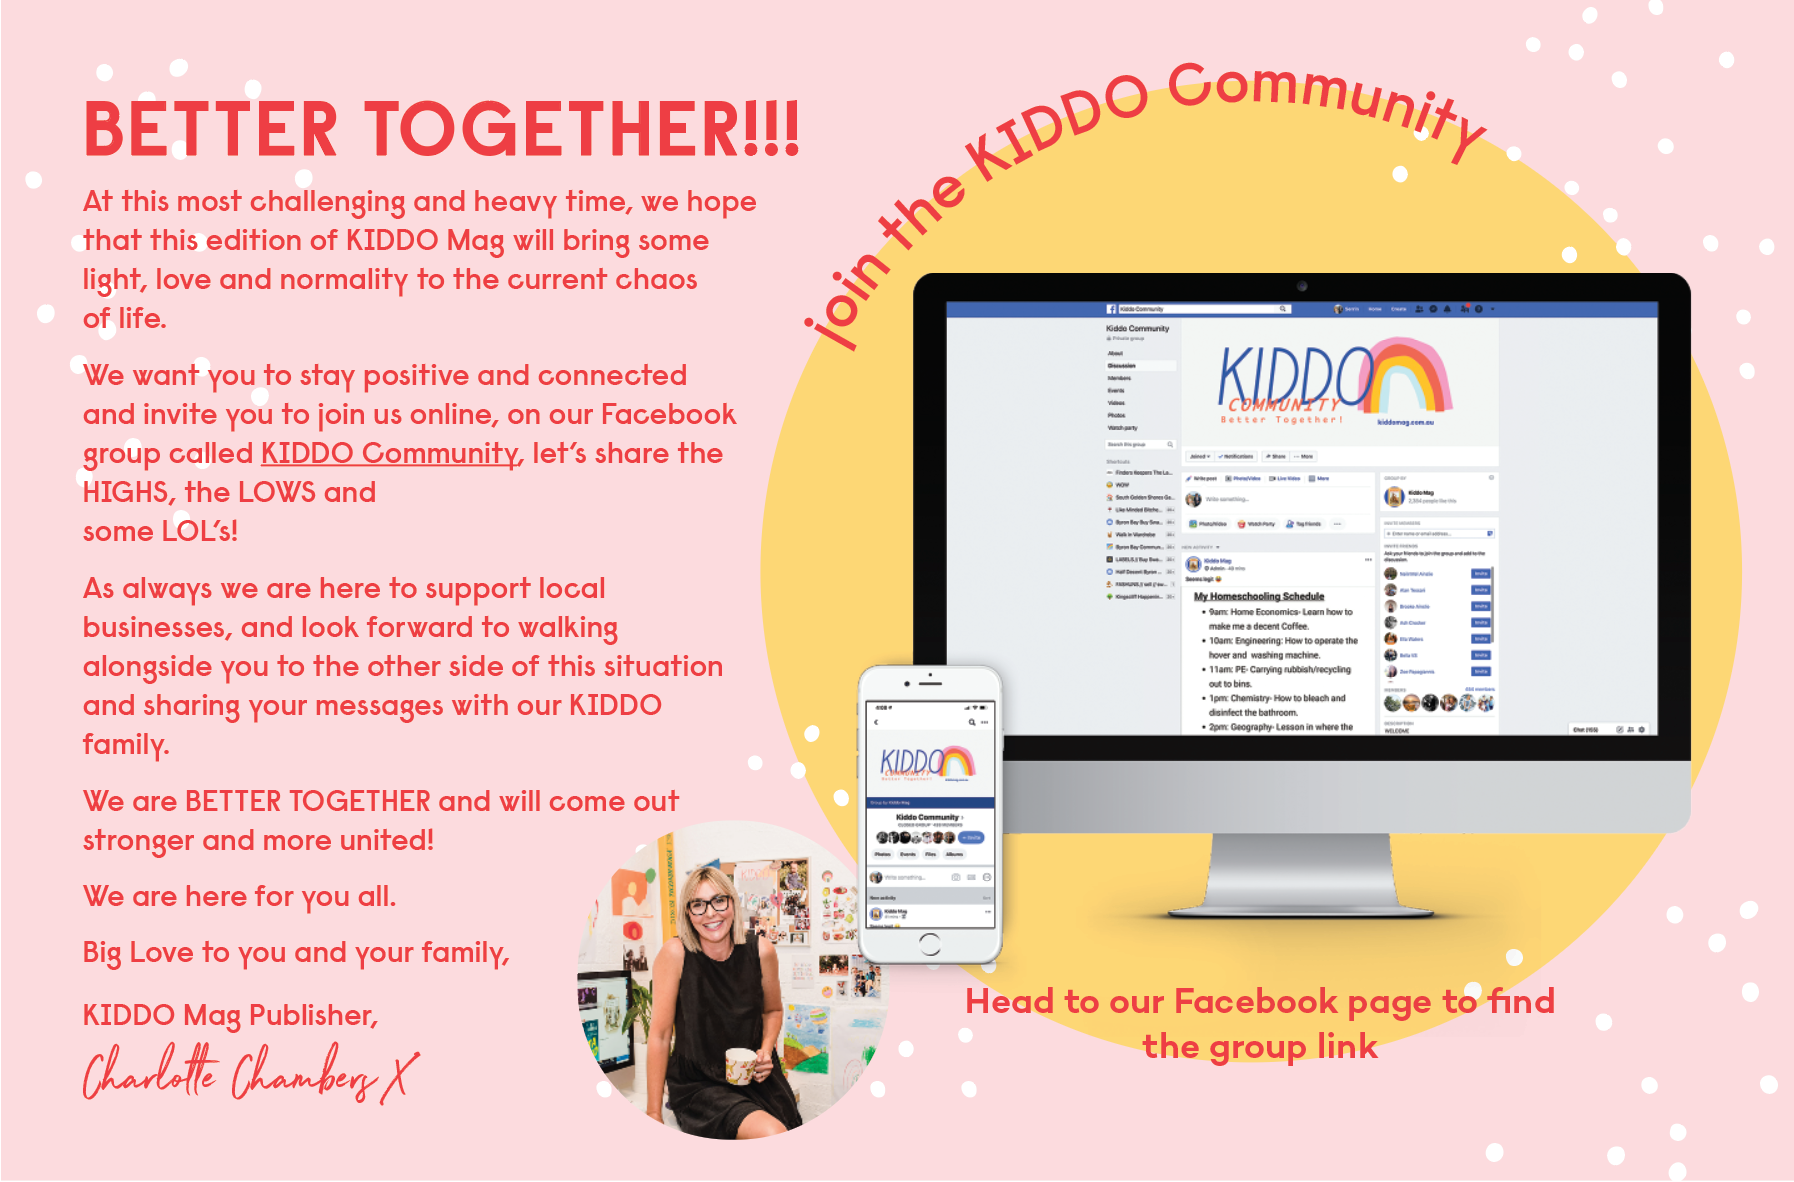 kiddo community